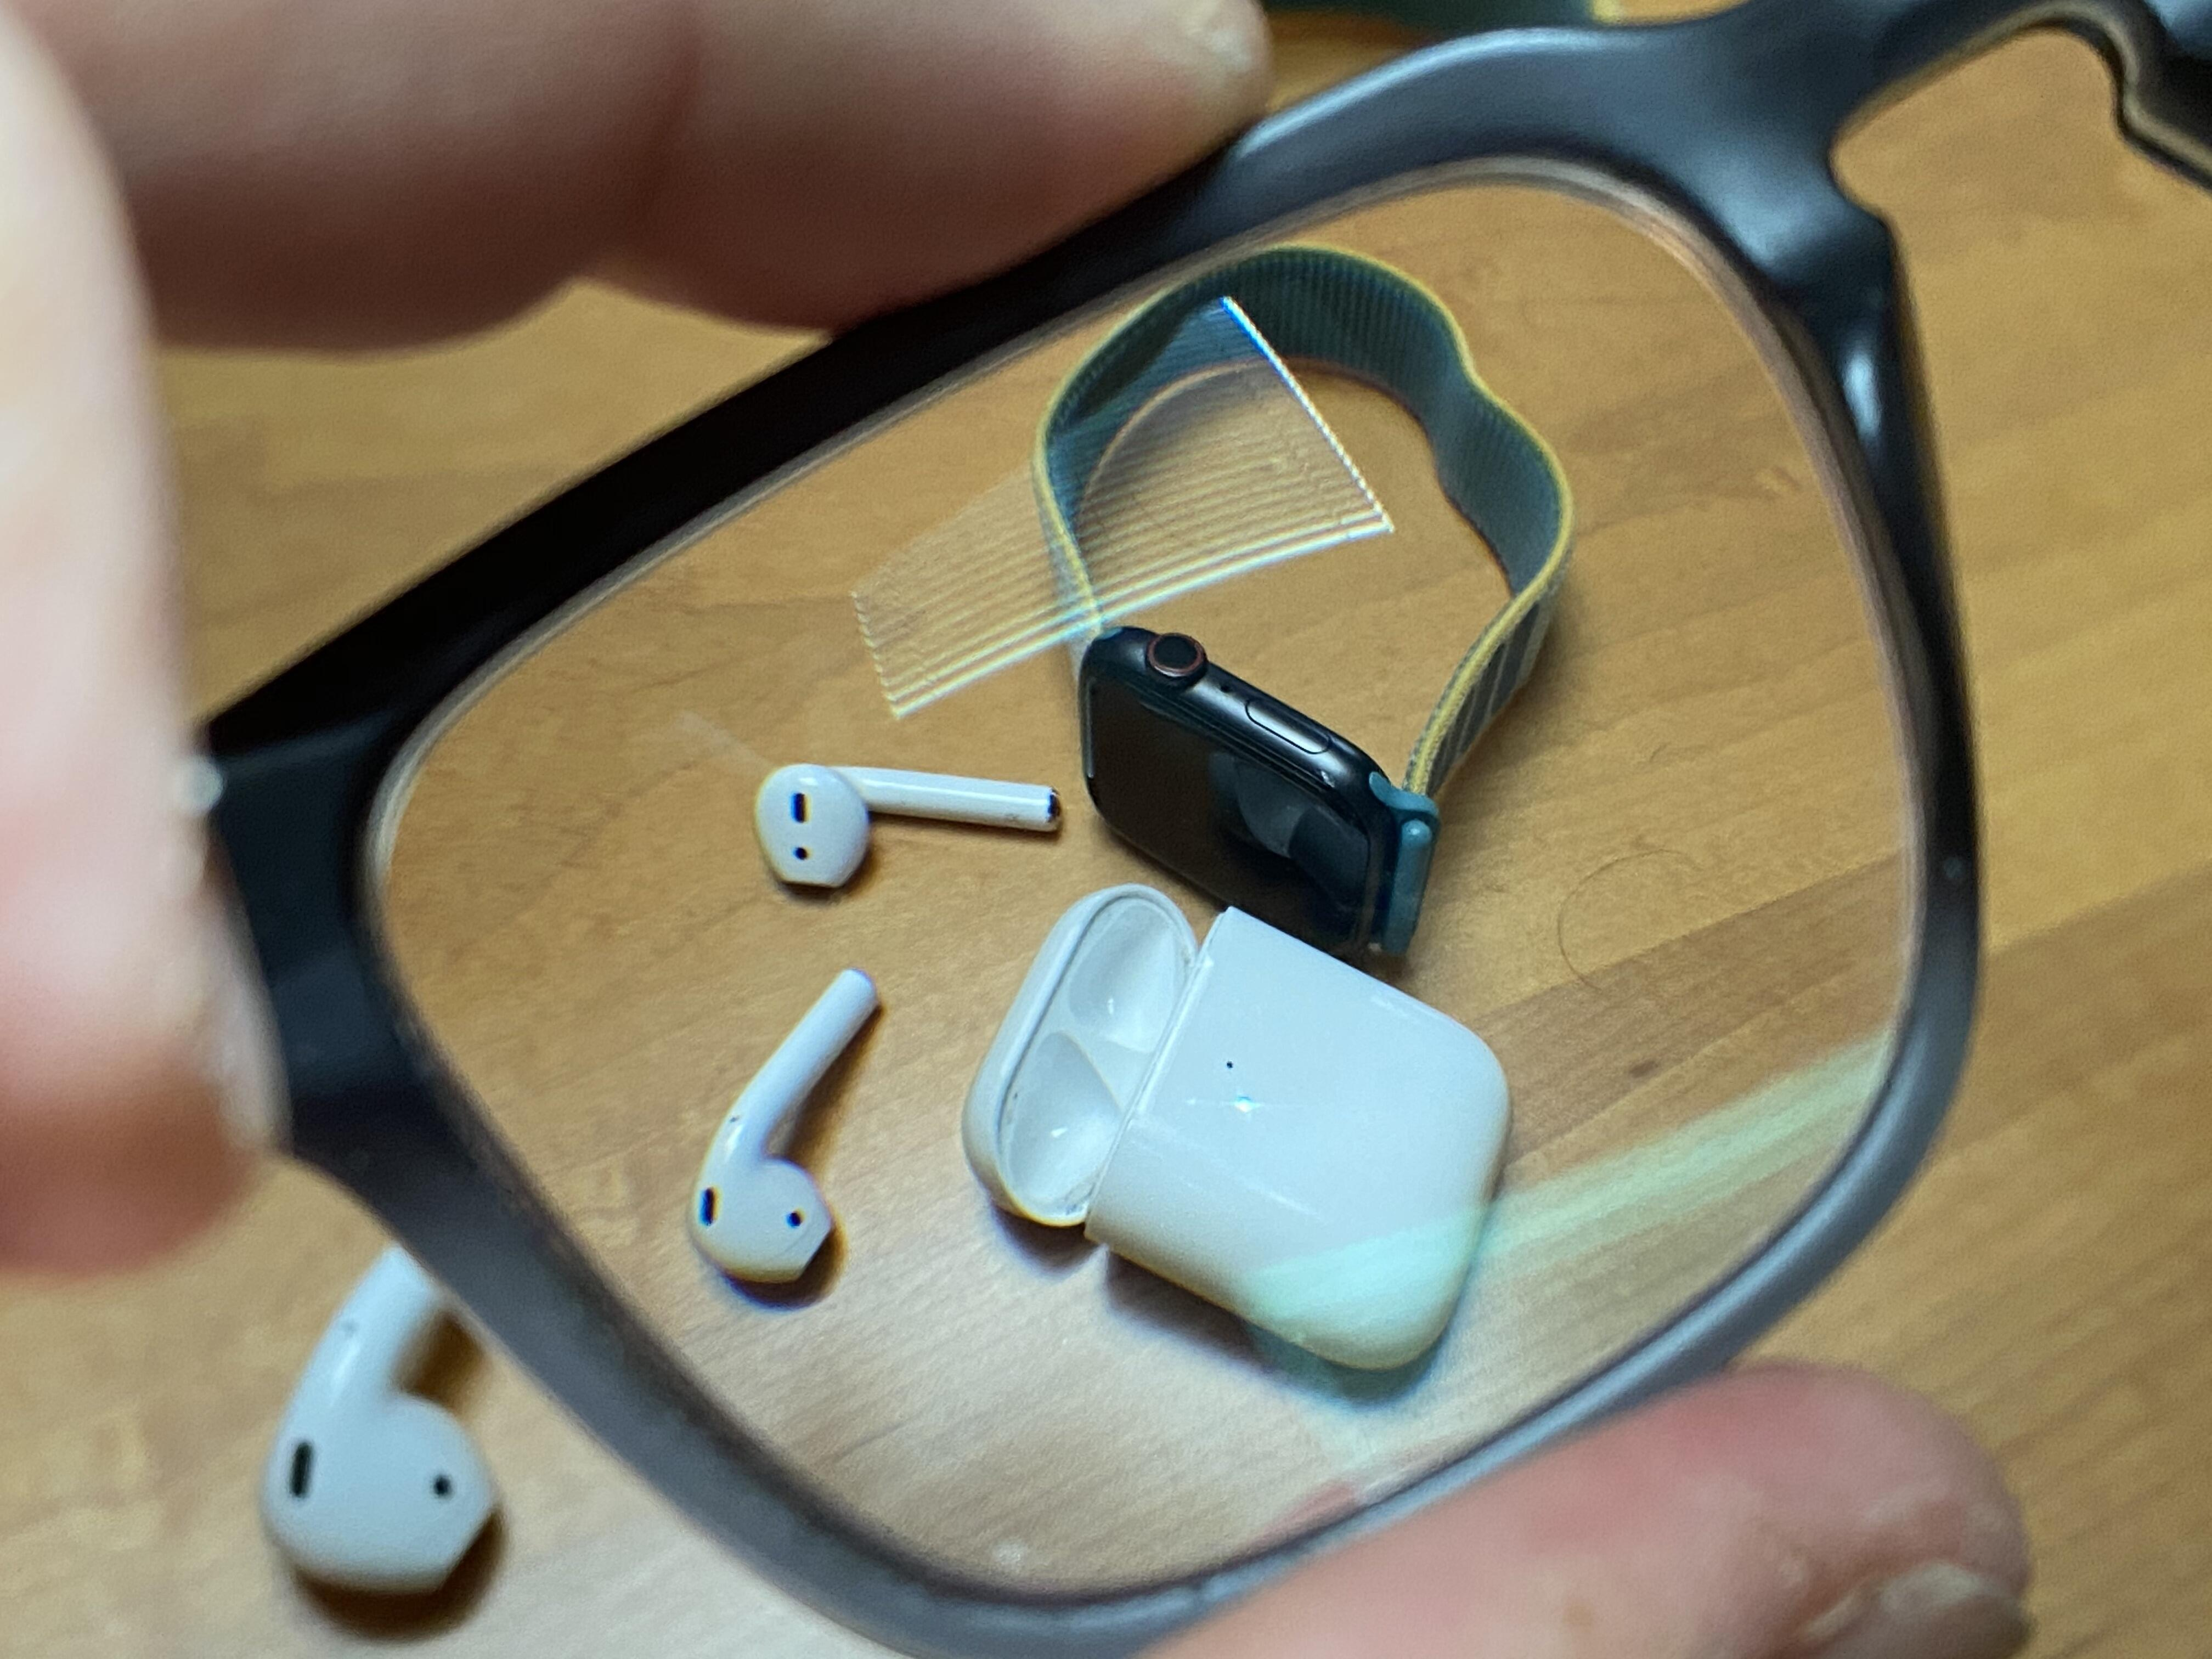 apple-glasses-airpods-watch